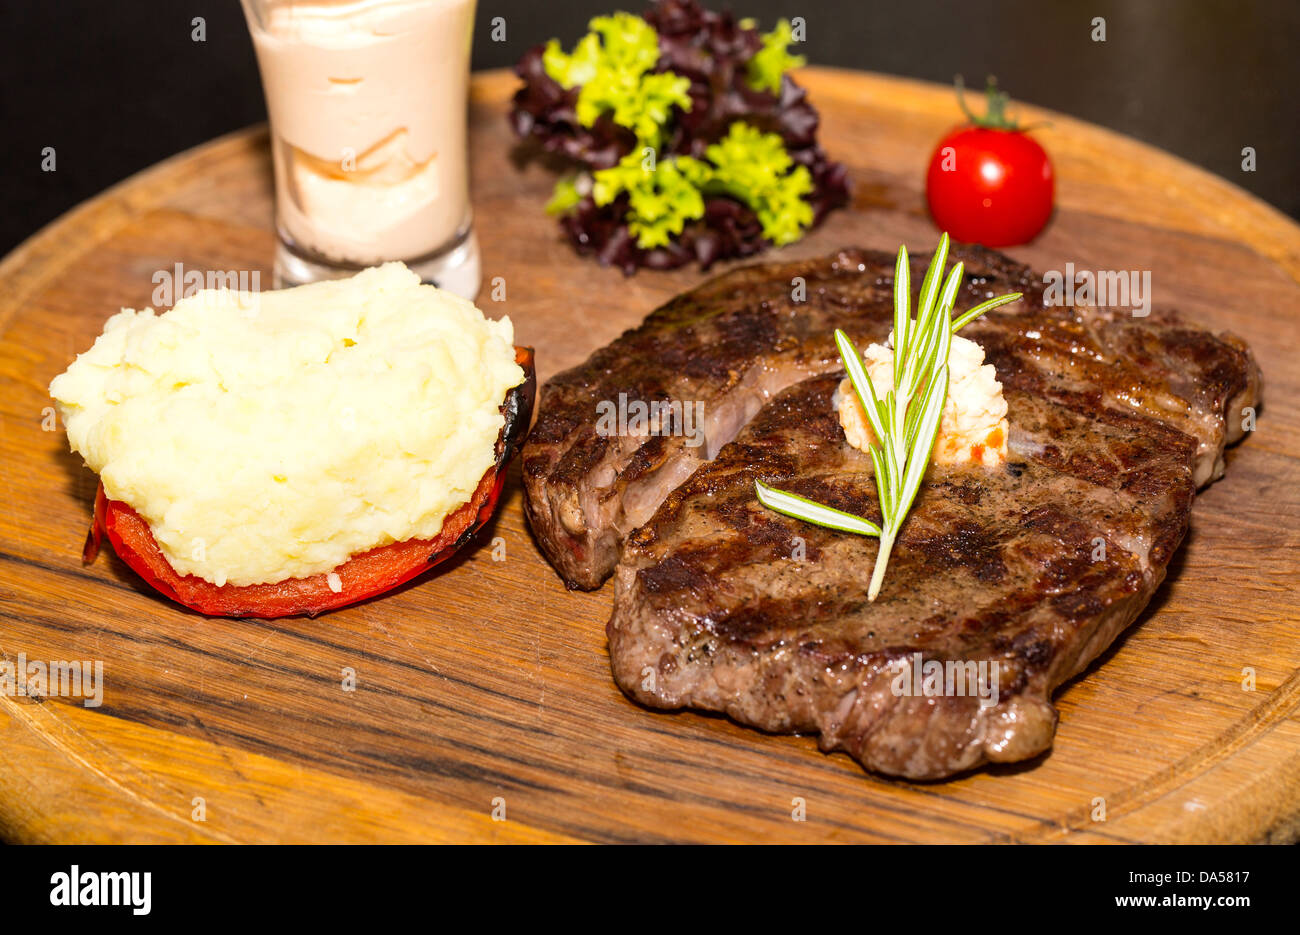 Beef steak cooking on the grill - Stock Image